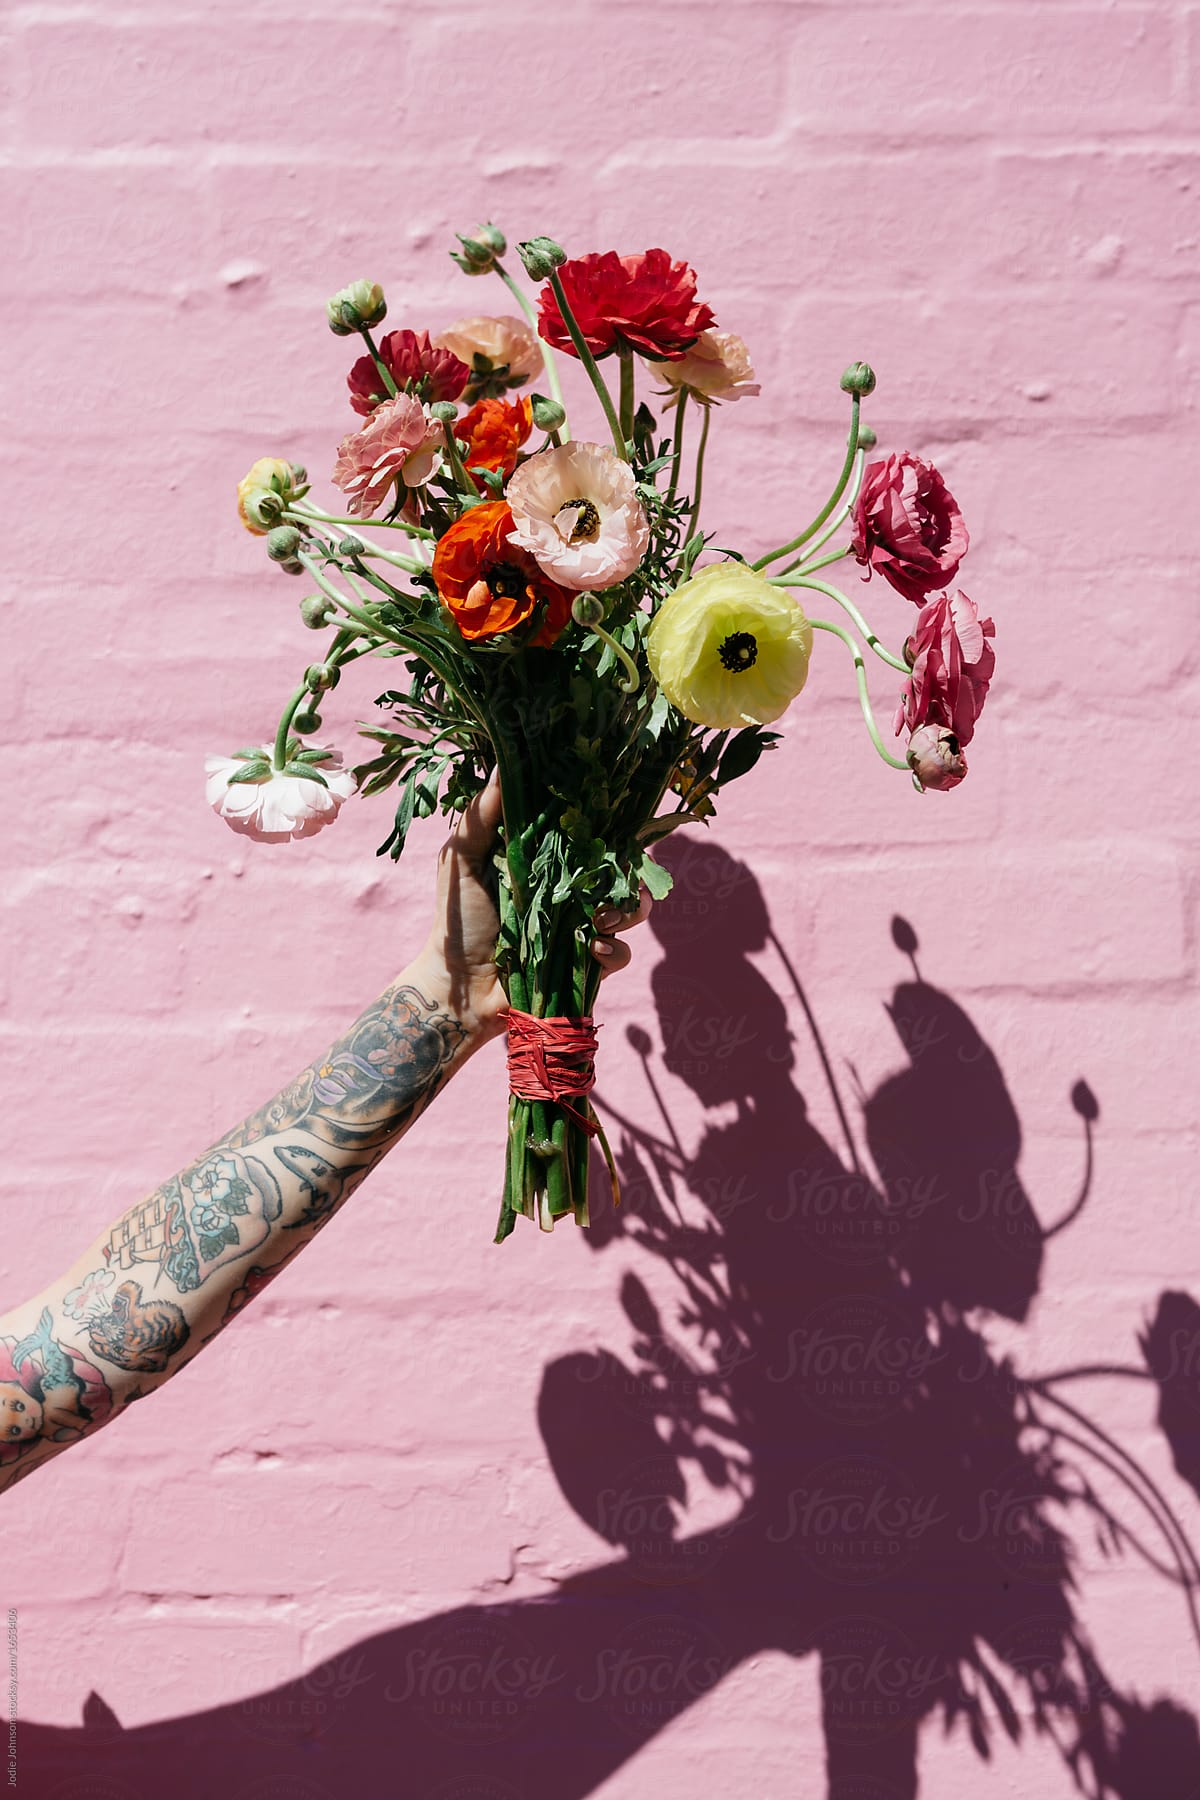 Female Arm With A Sleeve Tattoo Holding A Bunch Of Colorful Flowers